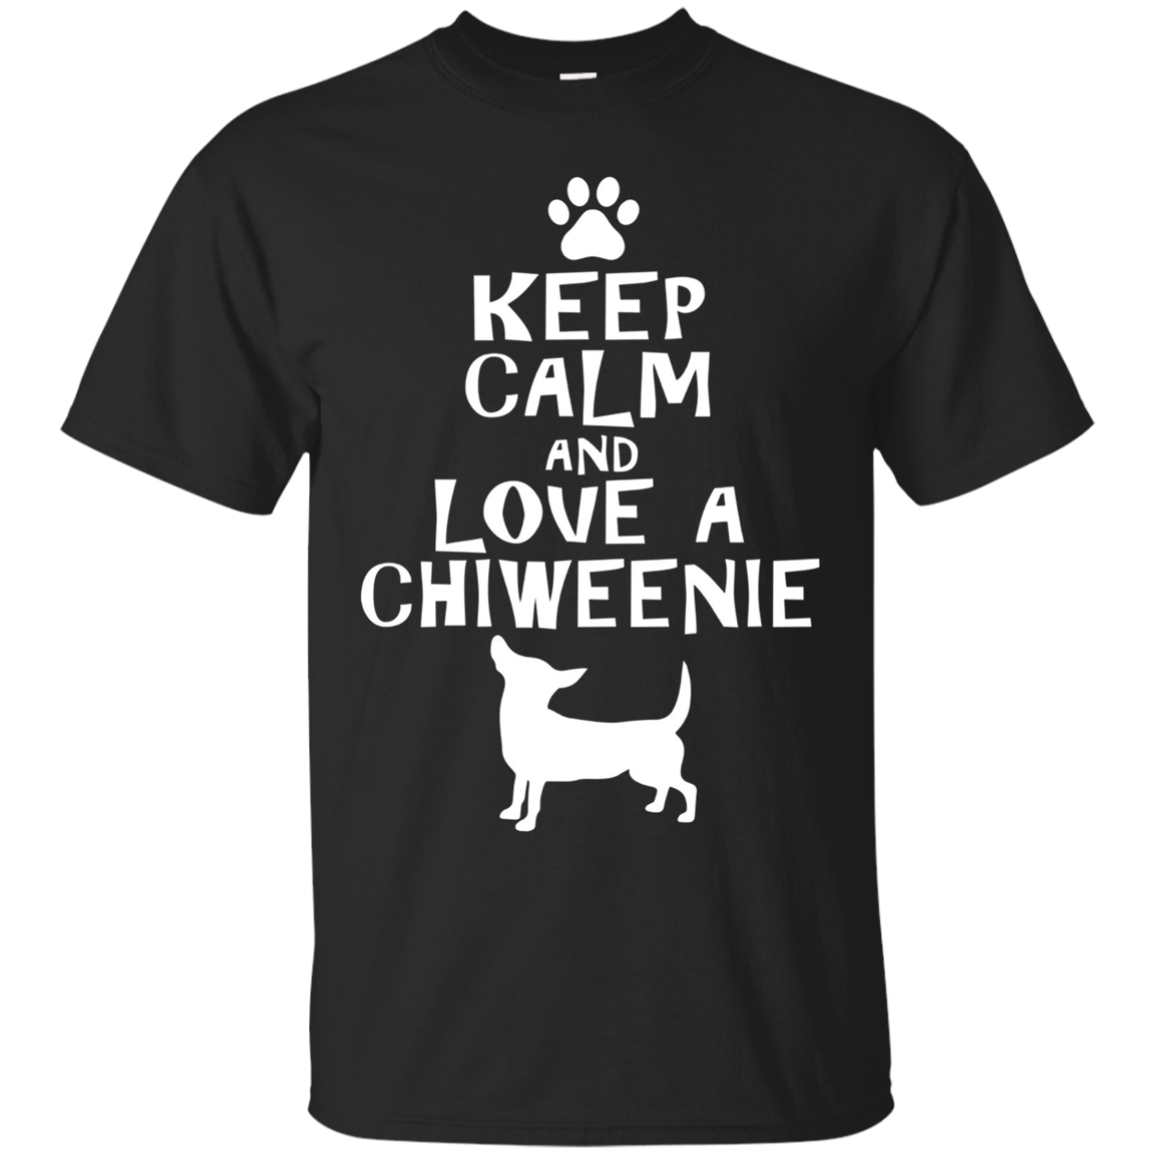 LOVE A CHIWEENIE GIFT T-SHIRT, Cute Chiweenie Dog Shirt